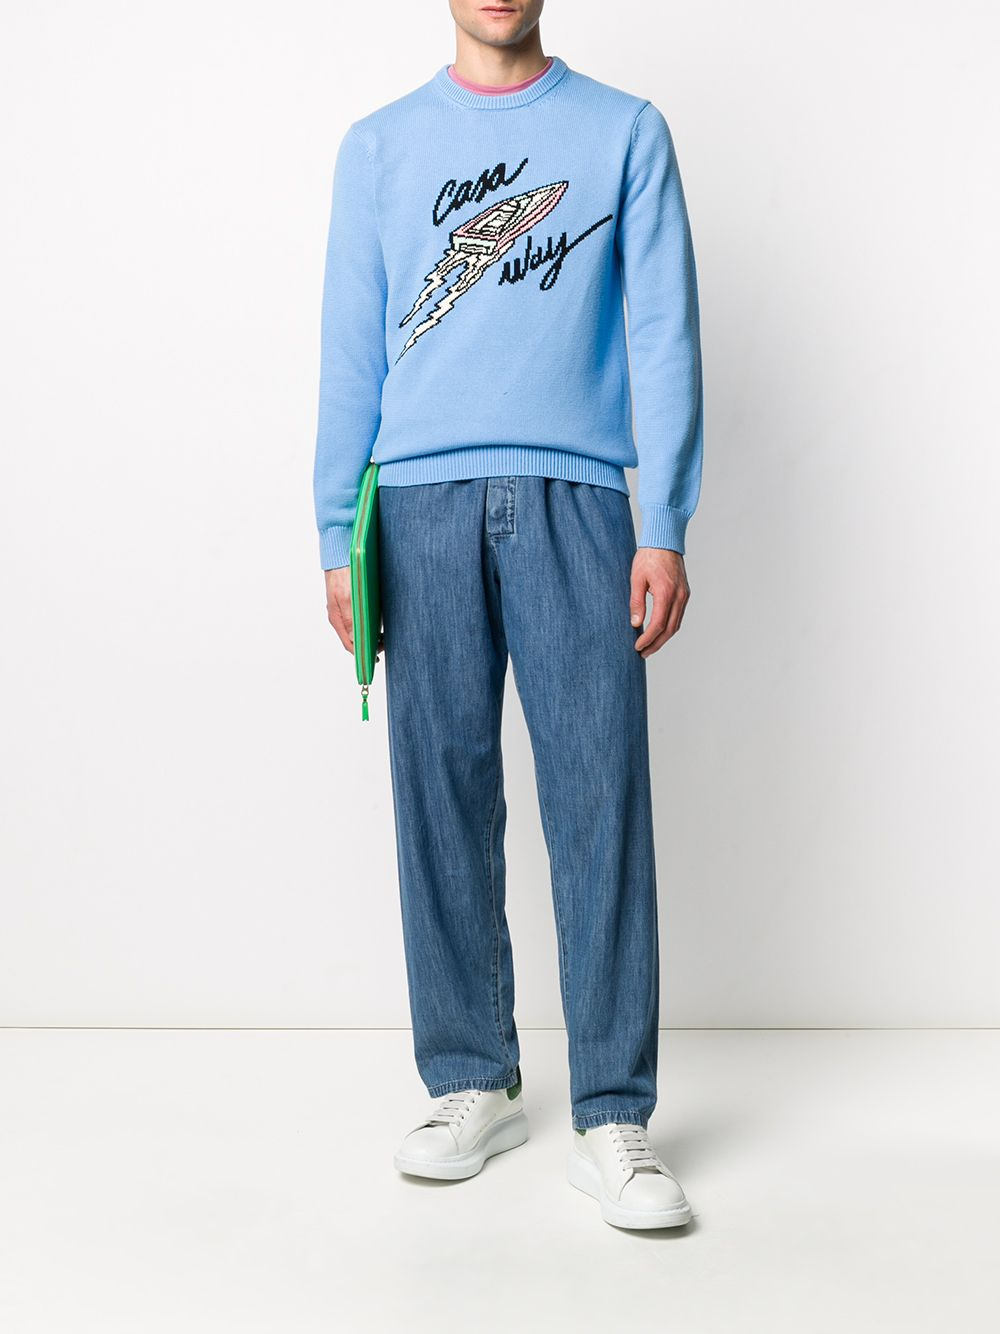 Casa Way Jumper- Blue On Model